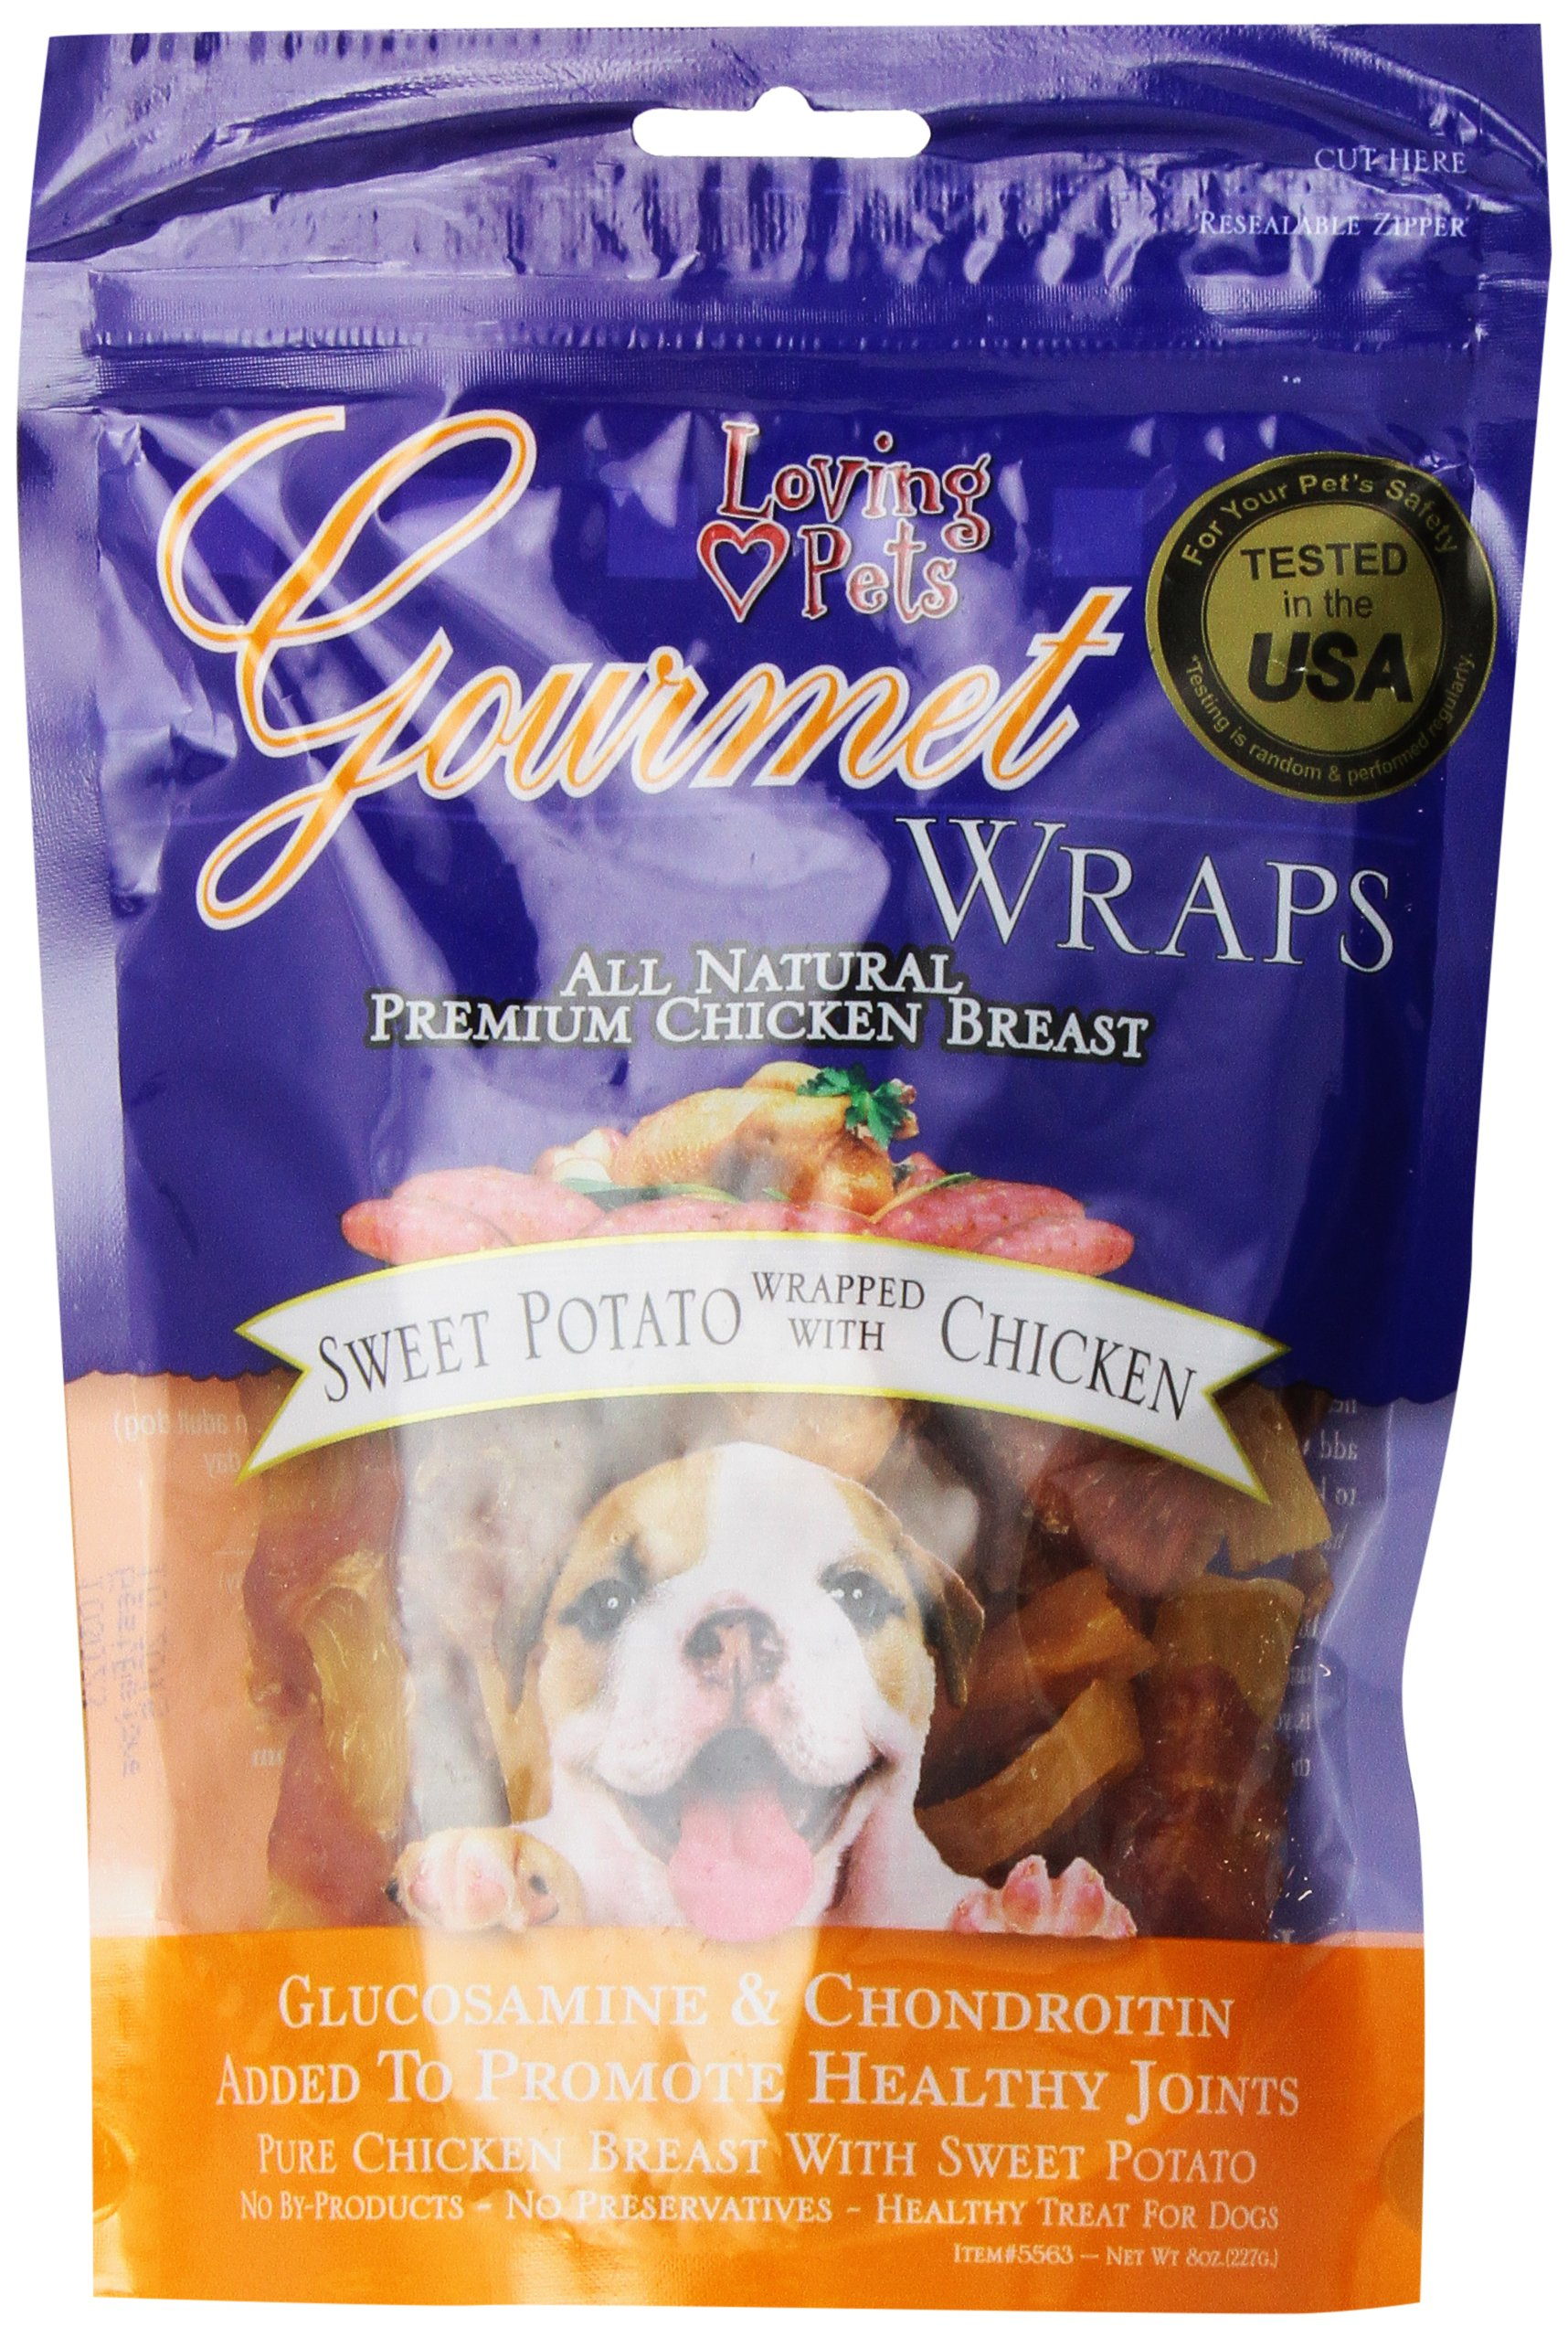 Loving Pets All Natural Premium Sweet Potato and Chicken Wraps with Glucosamine and Chondroitin Dog Treats, 8 oz